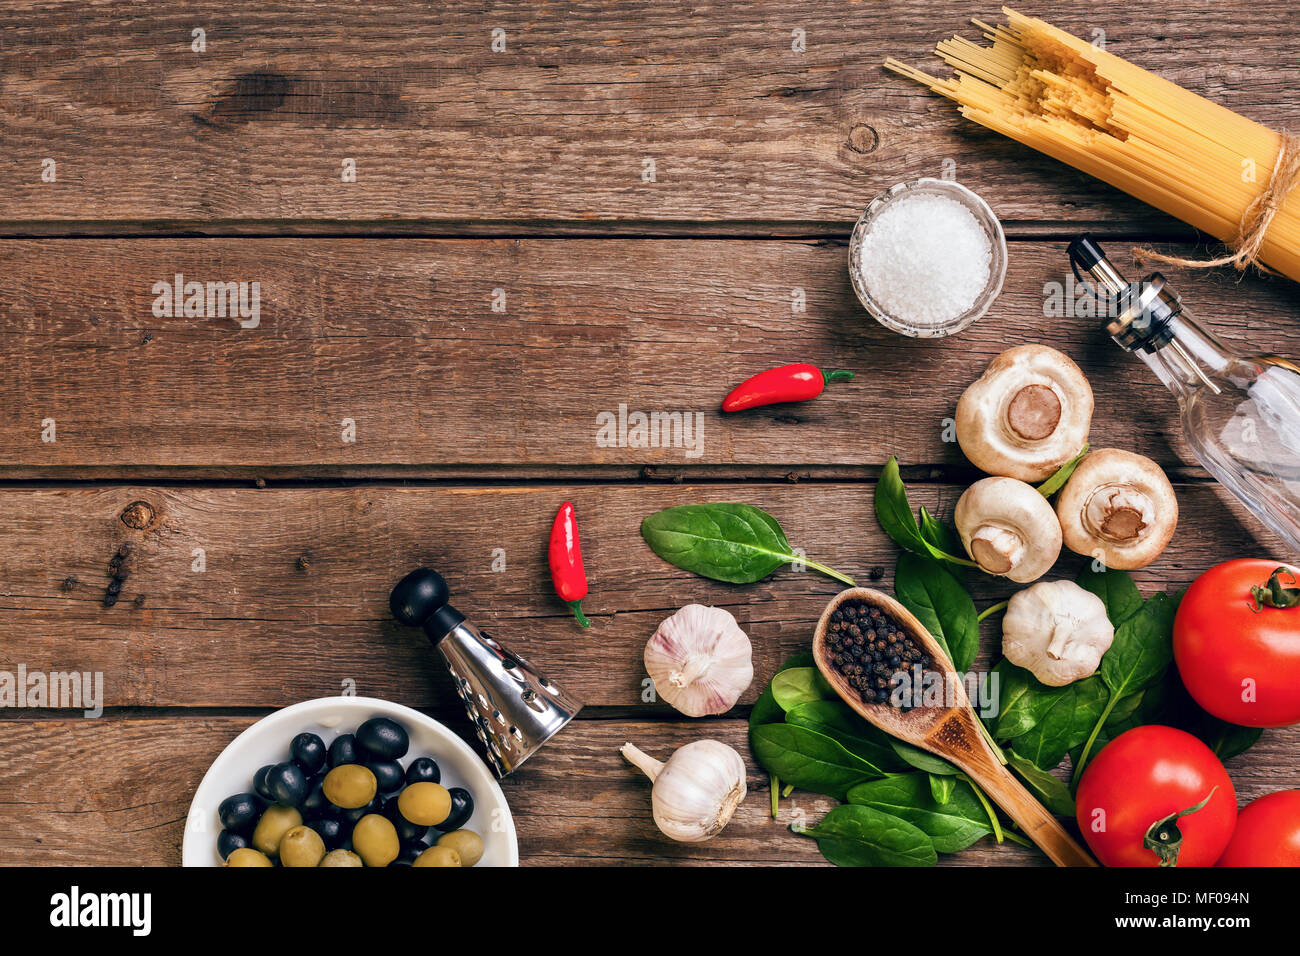 Italian food ingredients for the preparation pasta on wooden background - Stock Image